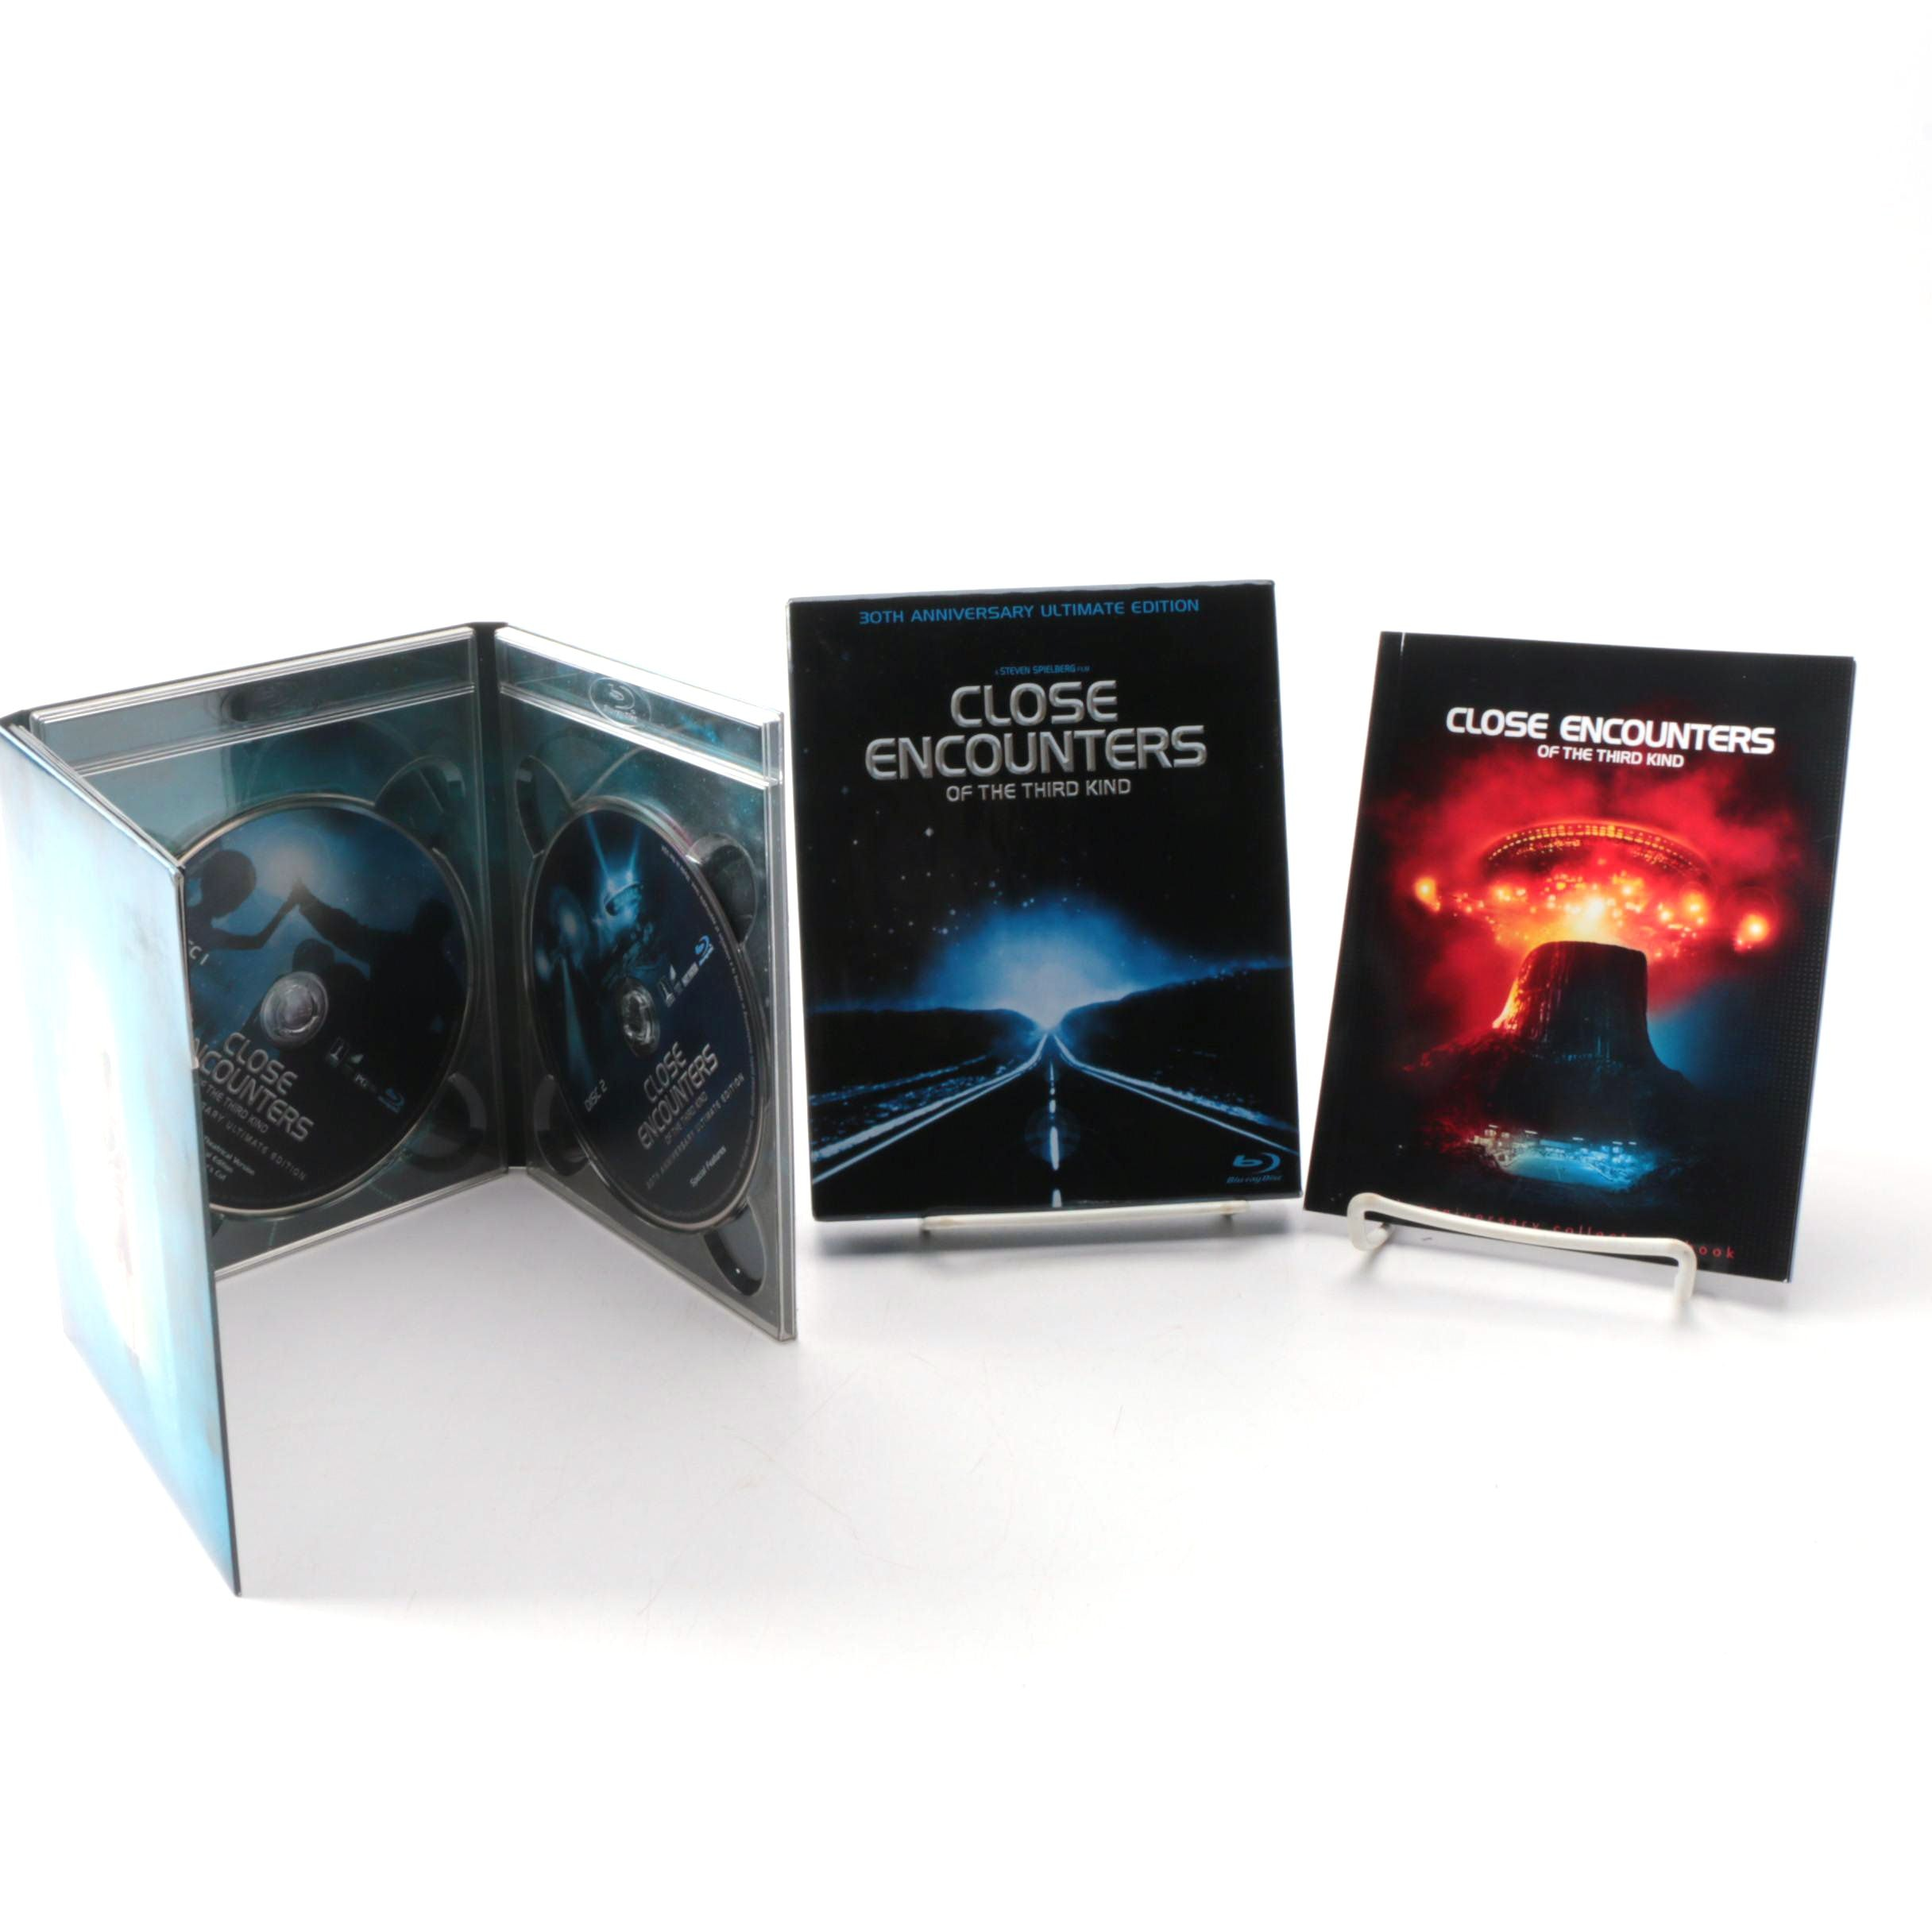 """""""Close Encounters of the Third Kind"""" Ultimate Edition Blu-ray Box Set"""